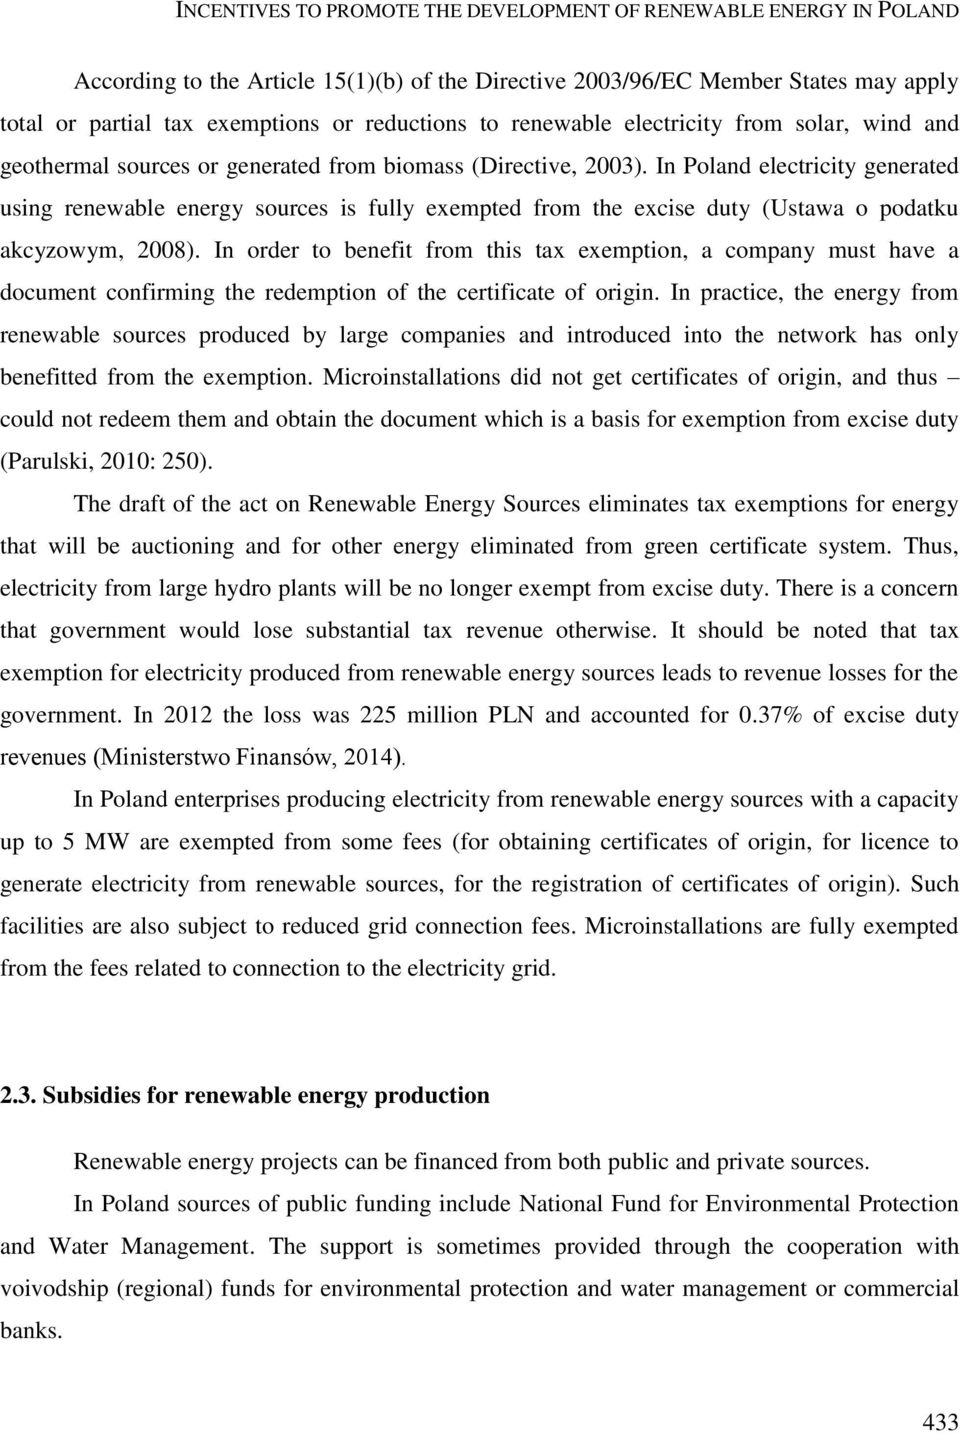 In Poland electricity generated using renewable energy sources is fully exempted from the excise duty (Ustawa o podatku akcyzowym, 2008).